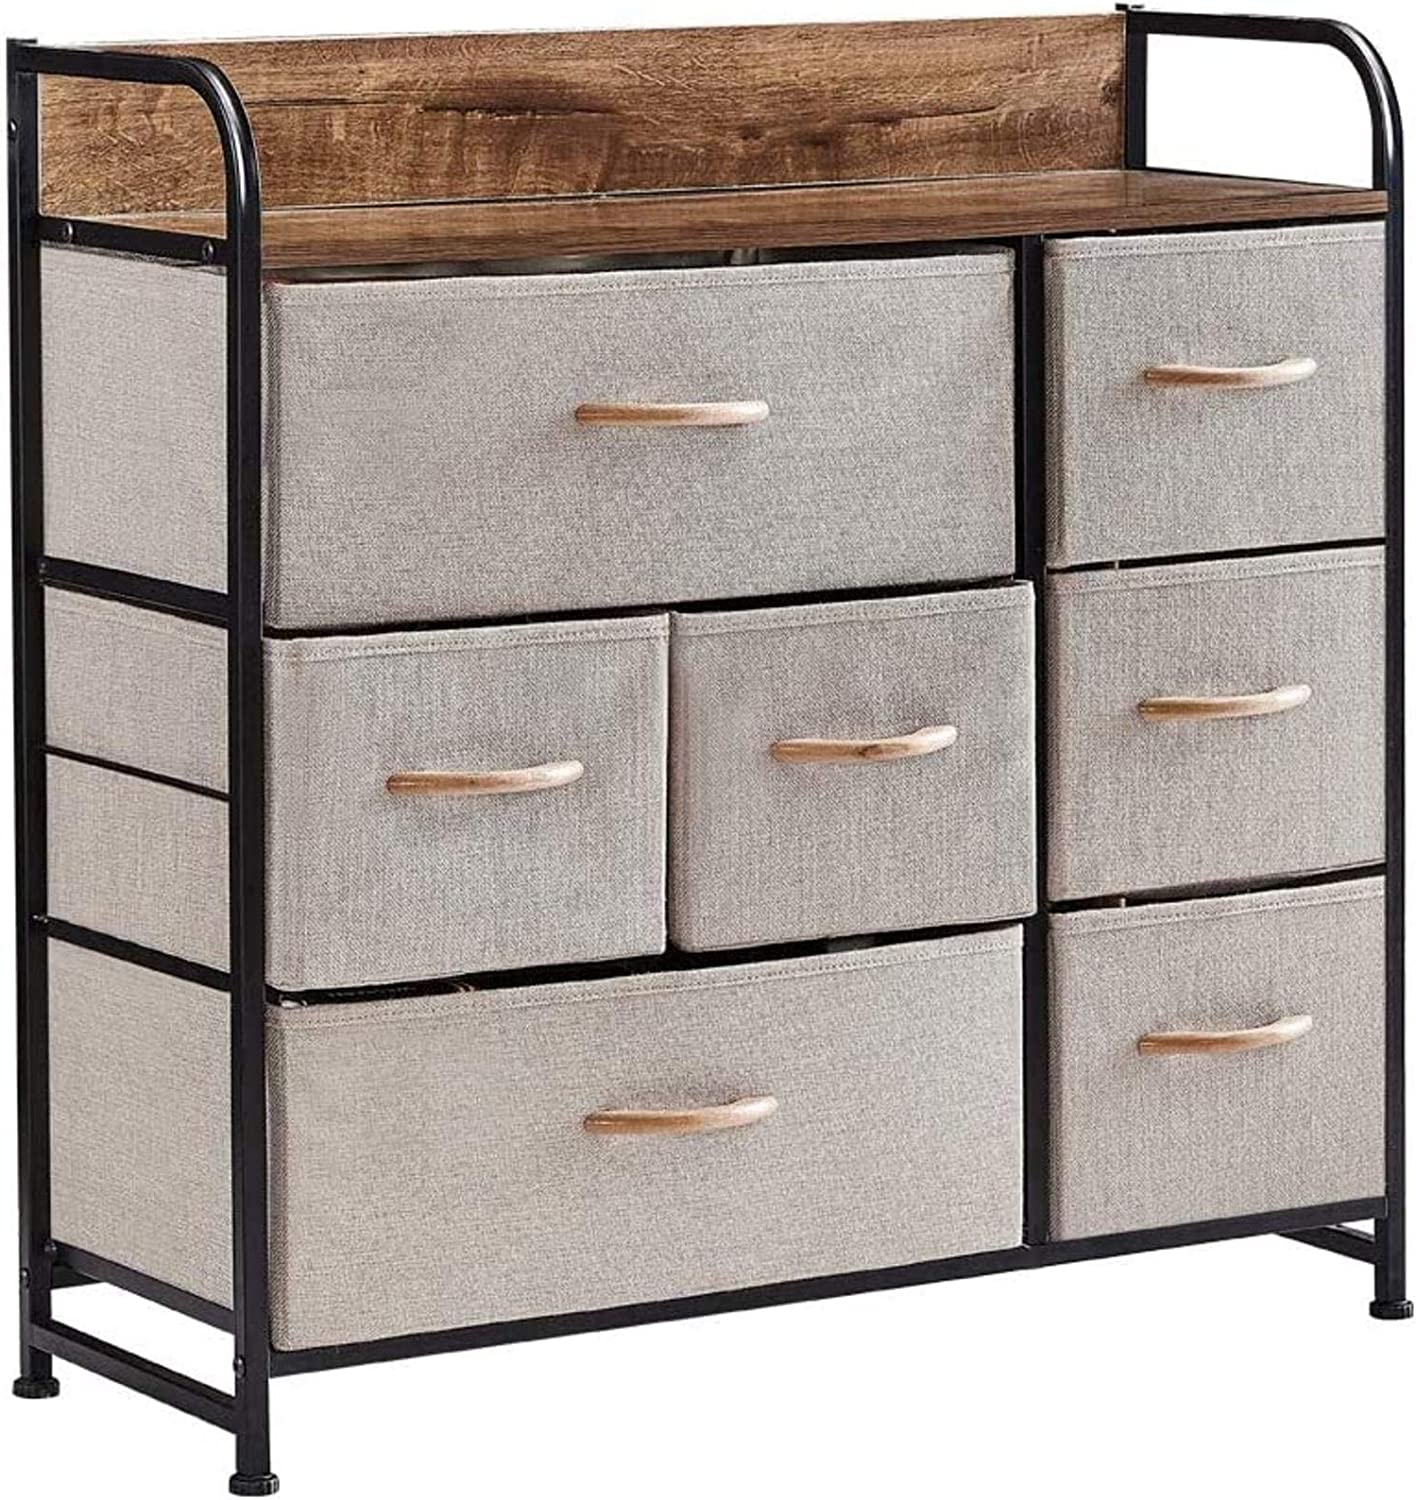 Dresser Special Campaign Storage Tower 7 Very popular Drawers Bedroo for Unit Fabric Organizer